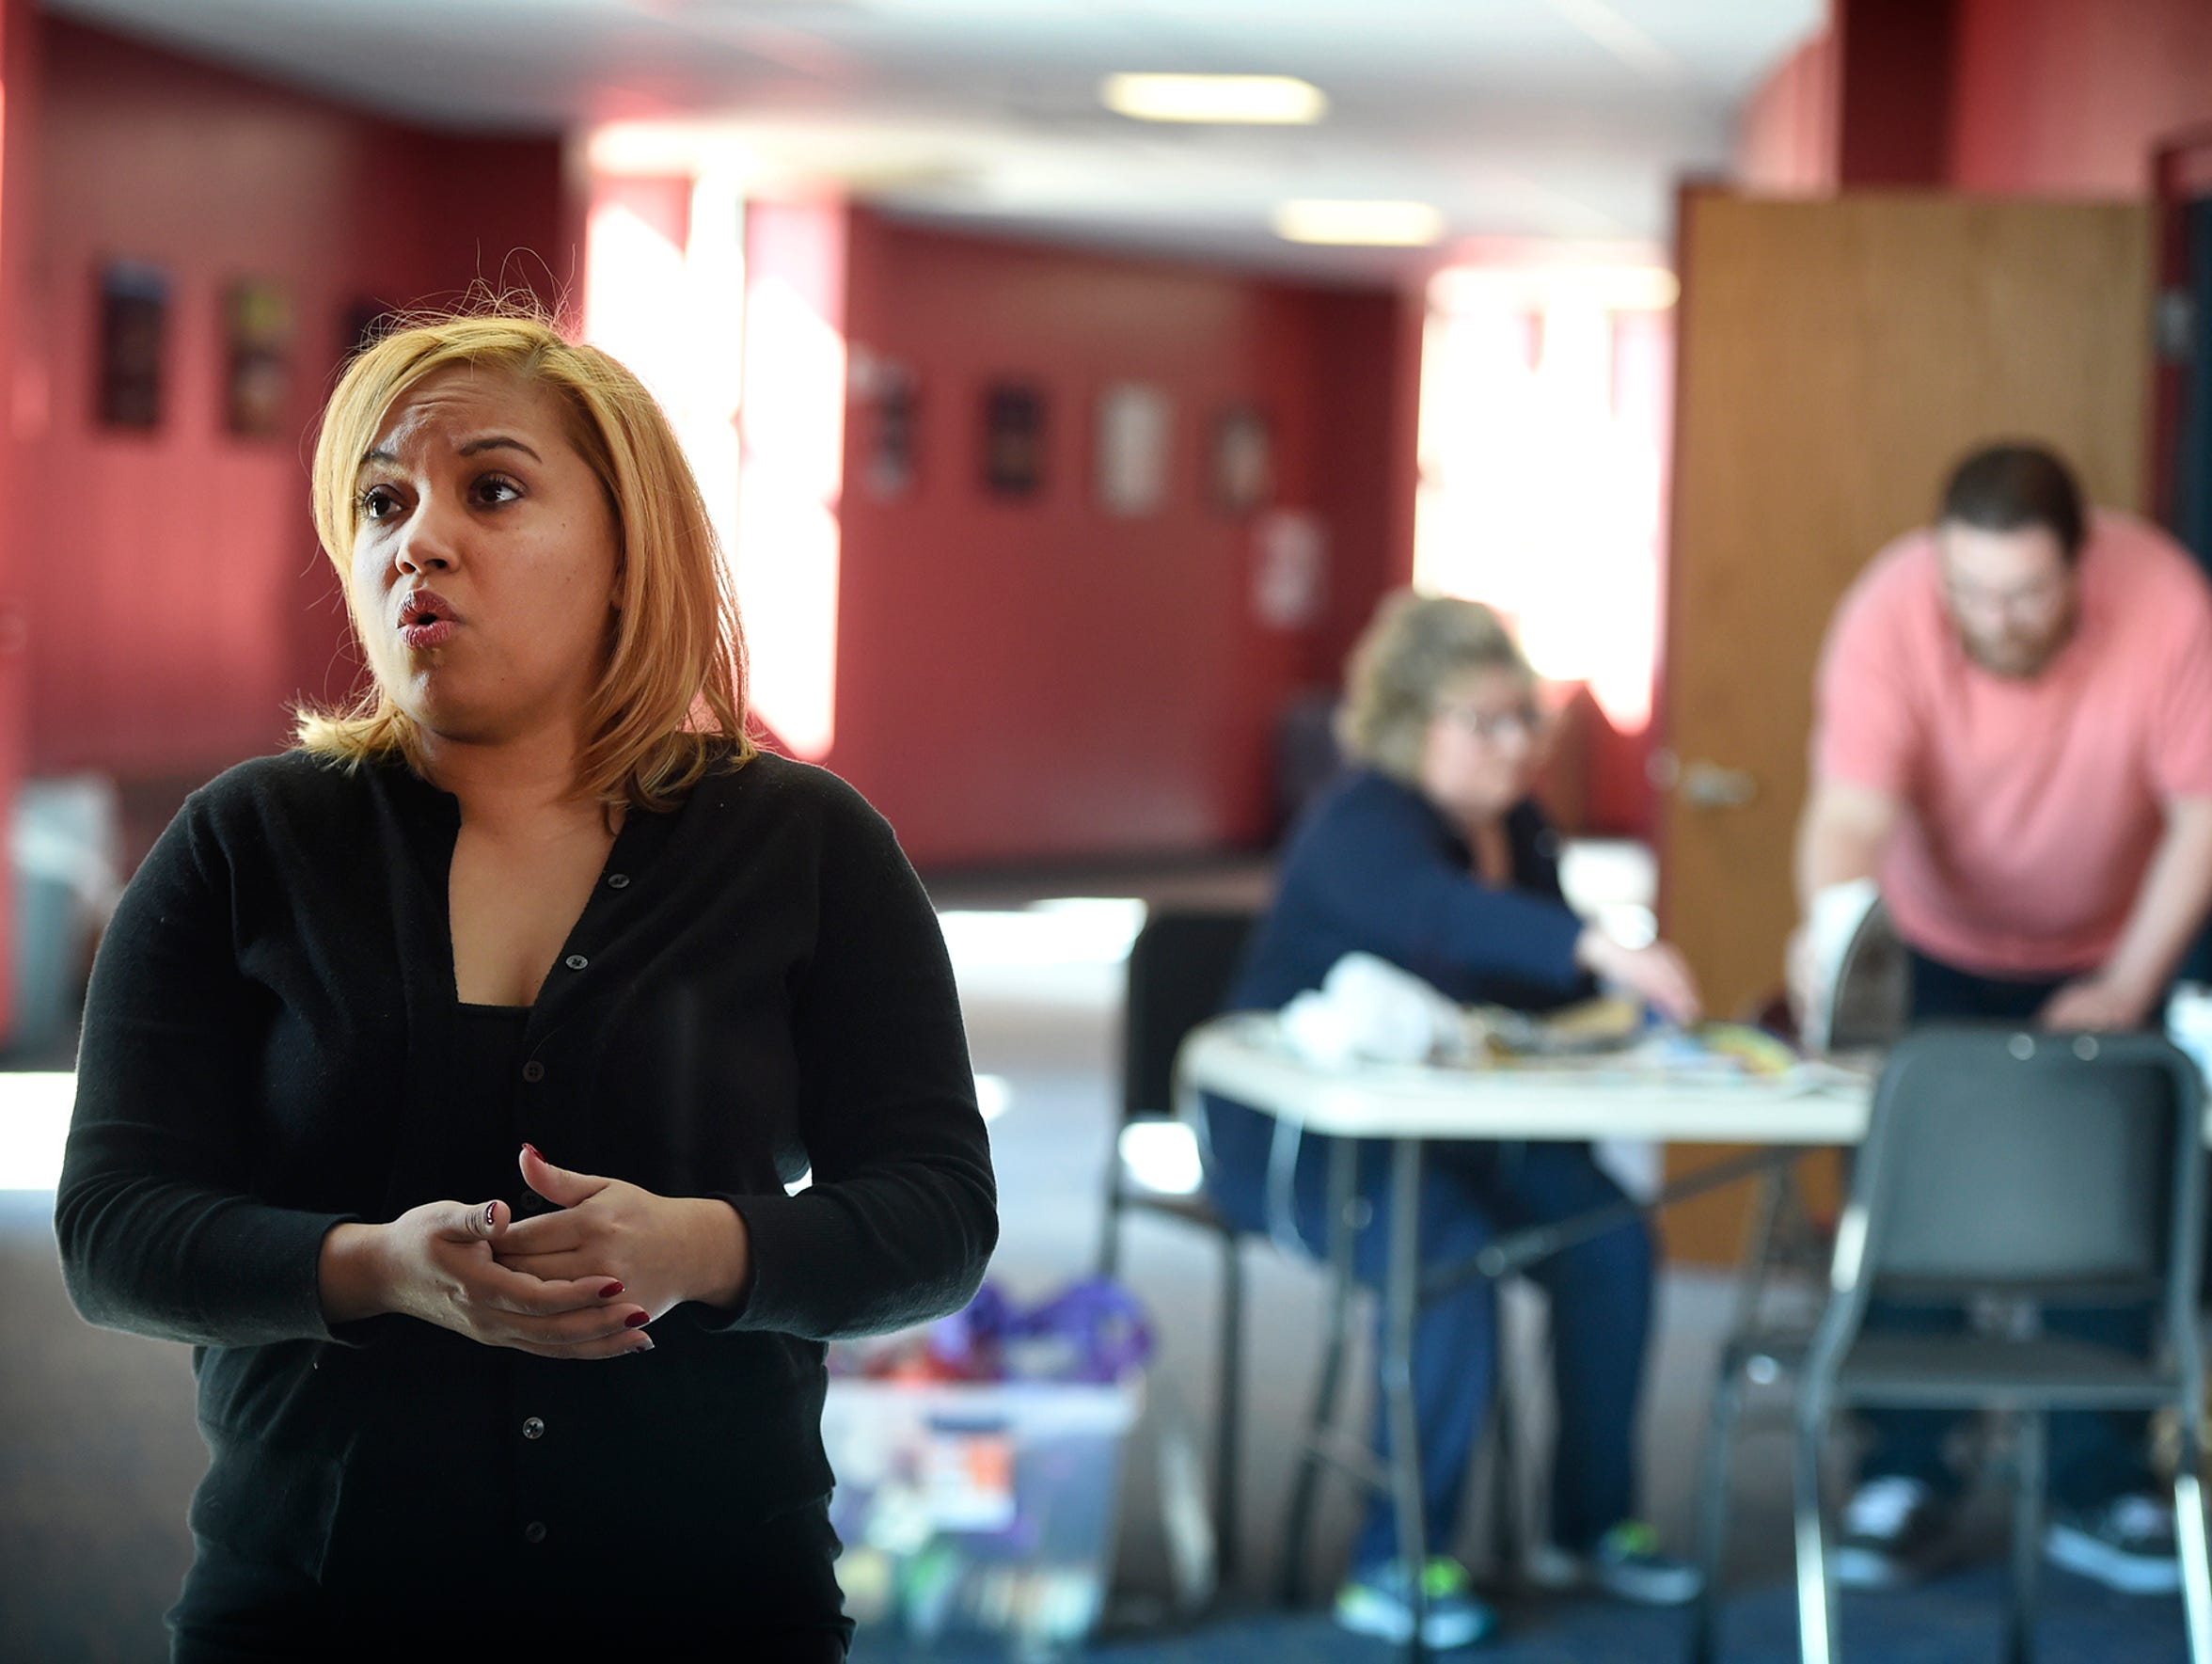 Some Cedar parents believe tests do not measure the